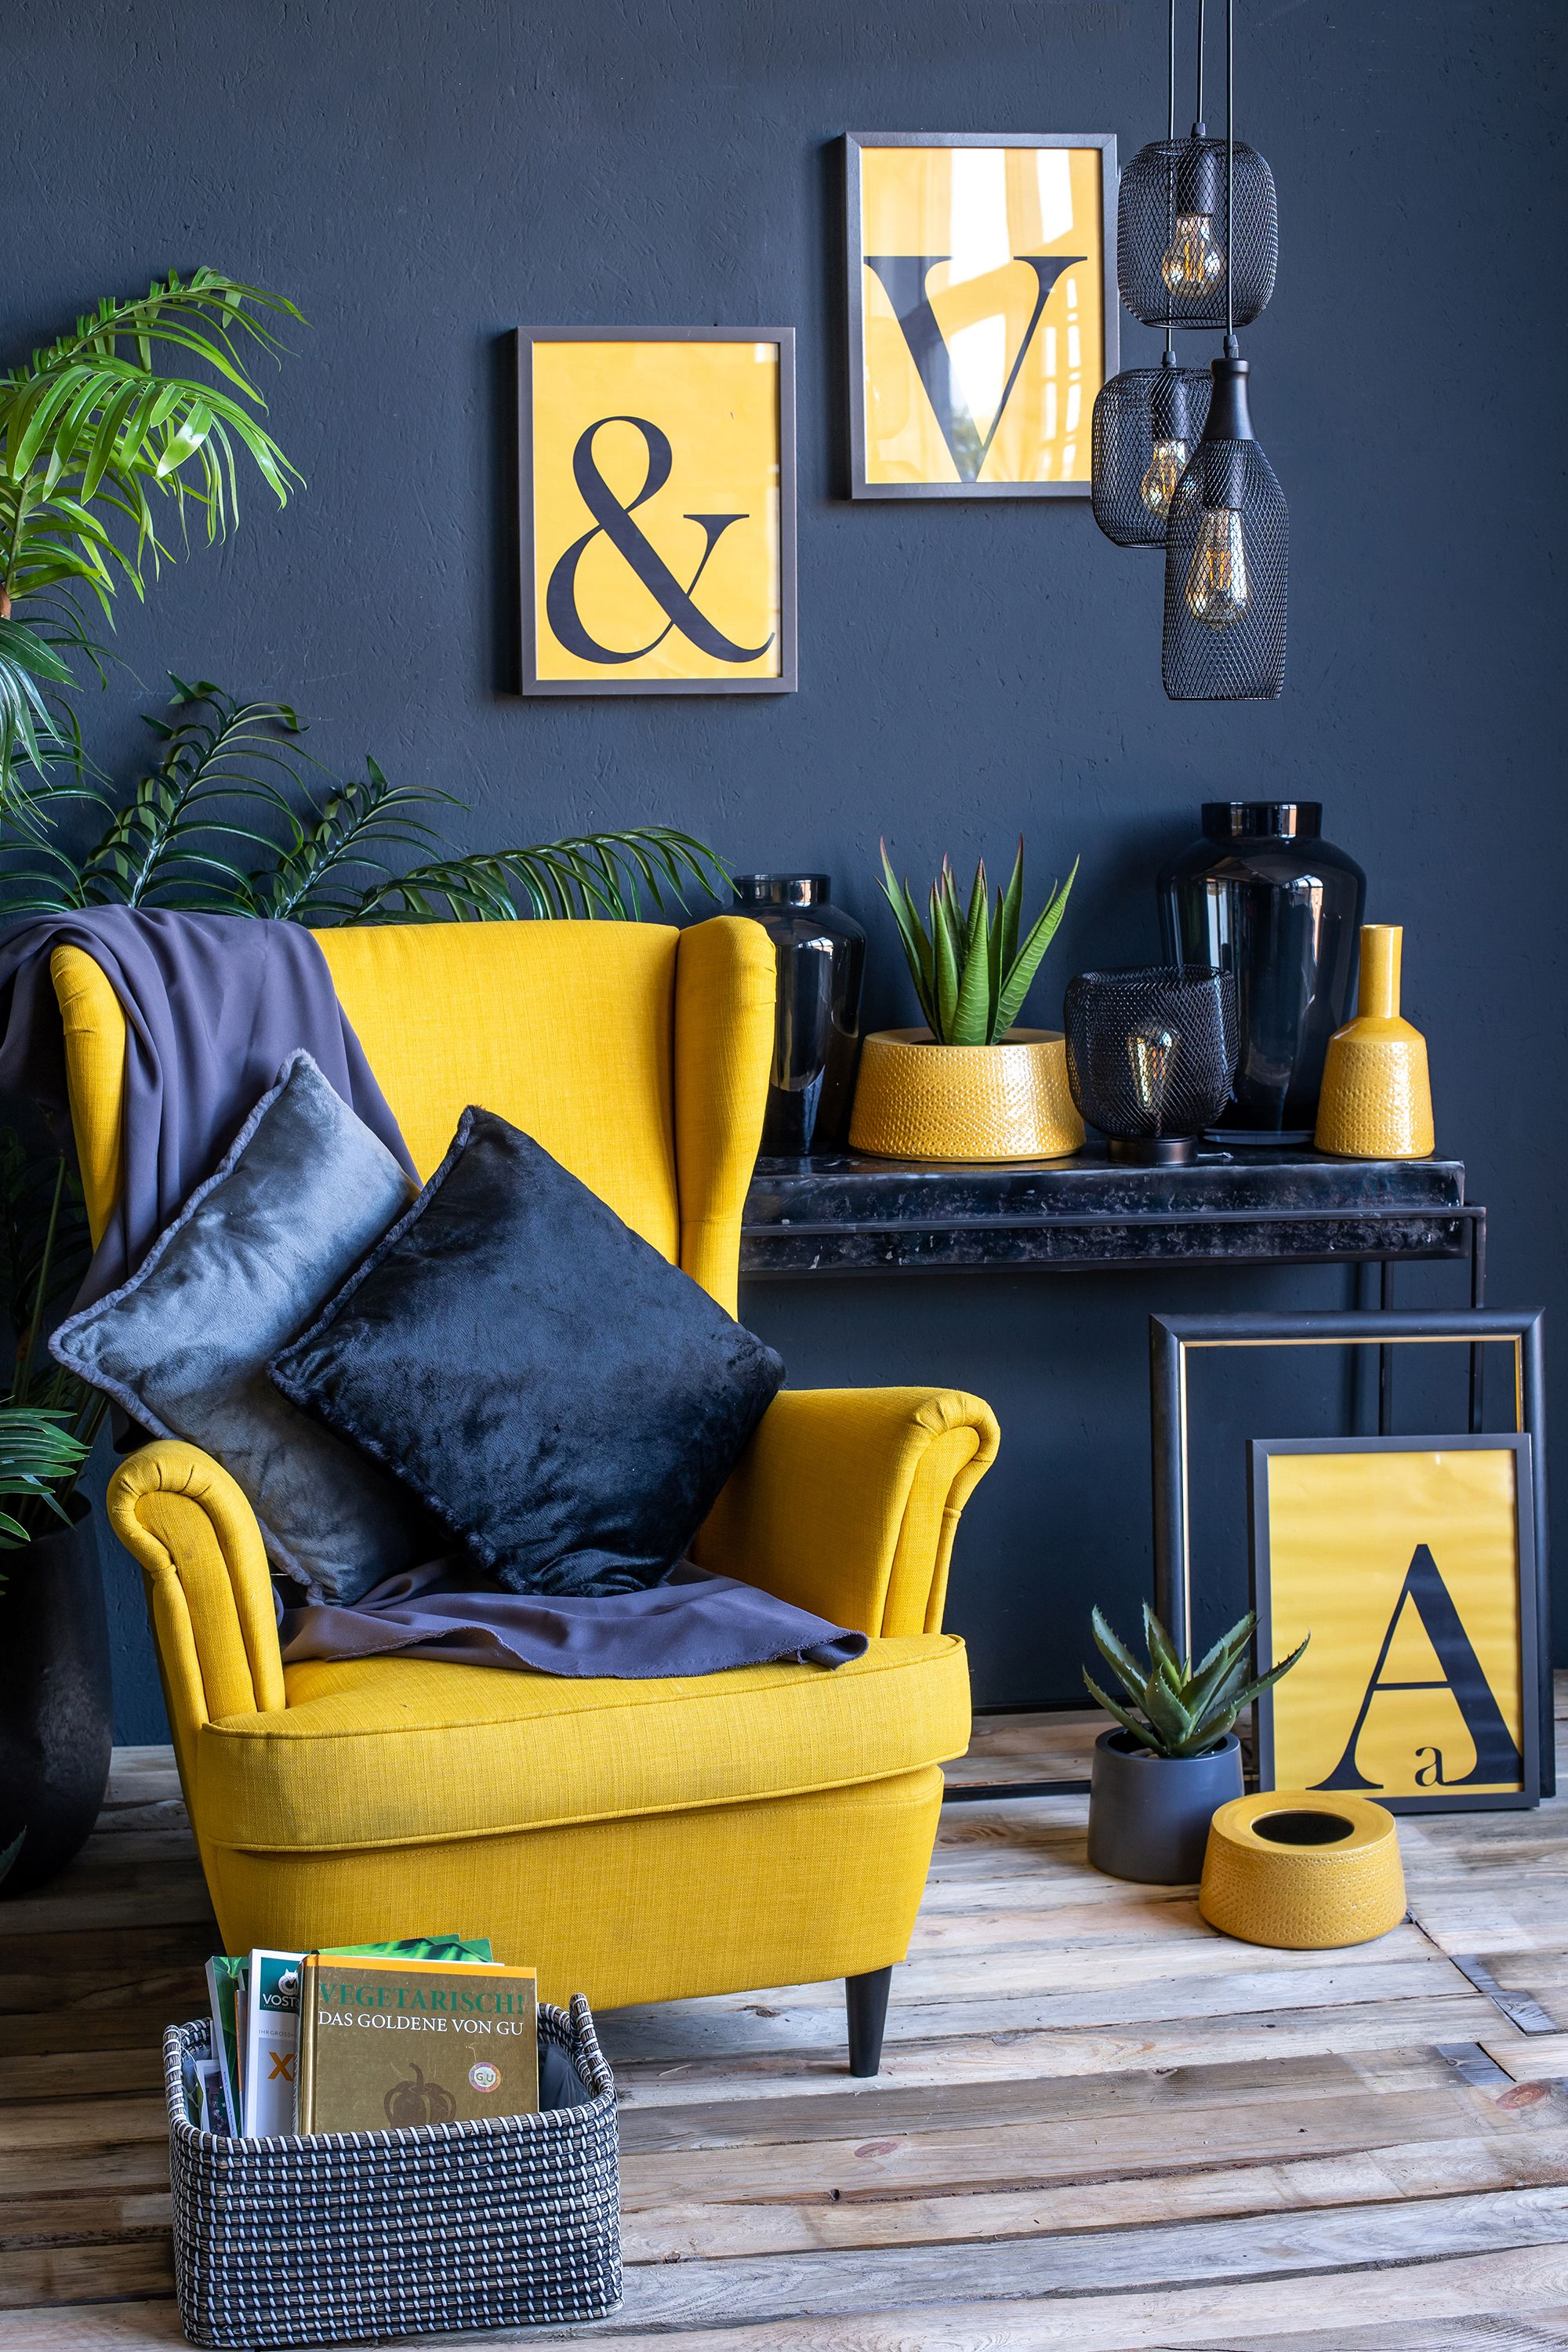 Gorgeous Blue And Yellow Living Room Decor Yellow Decor Living Room Blue And Yellow Living Room Yellow Living Room